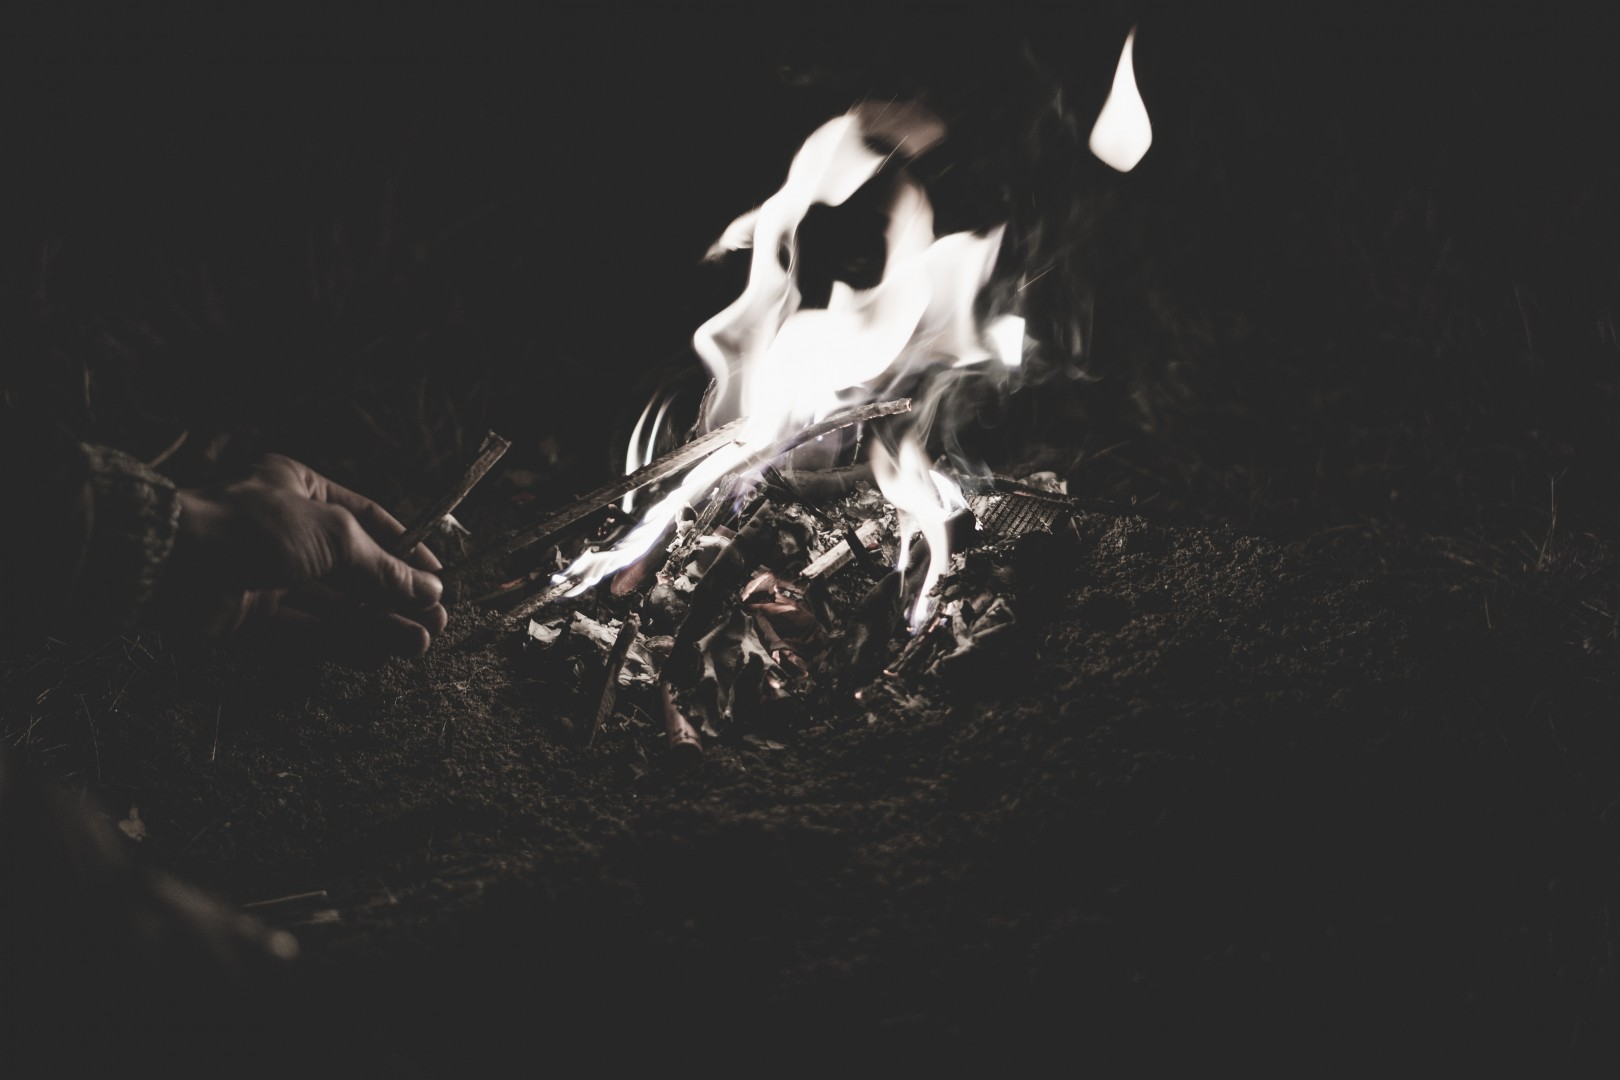 small fire burning